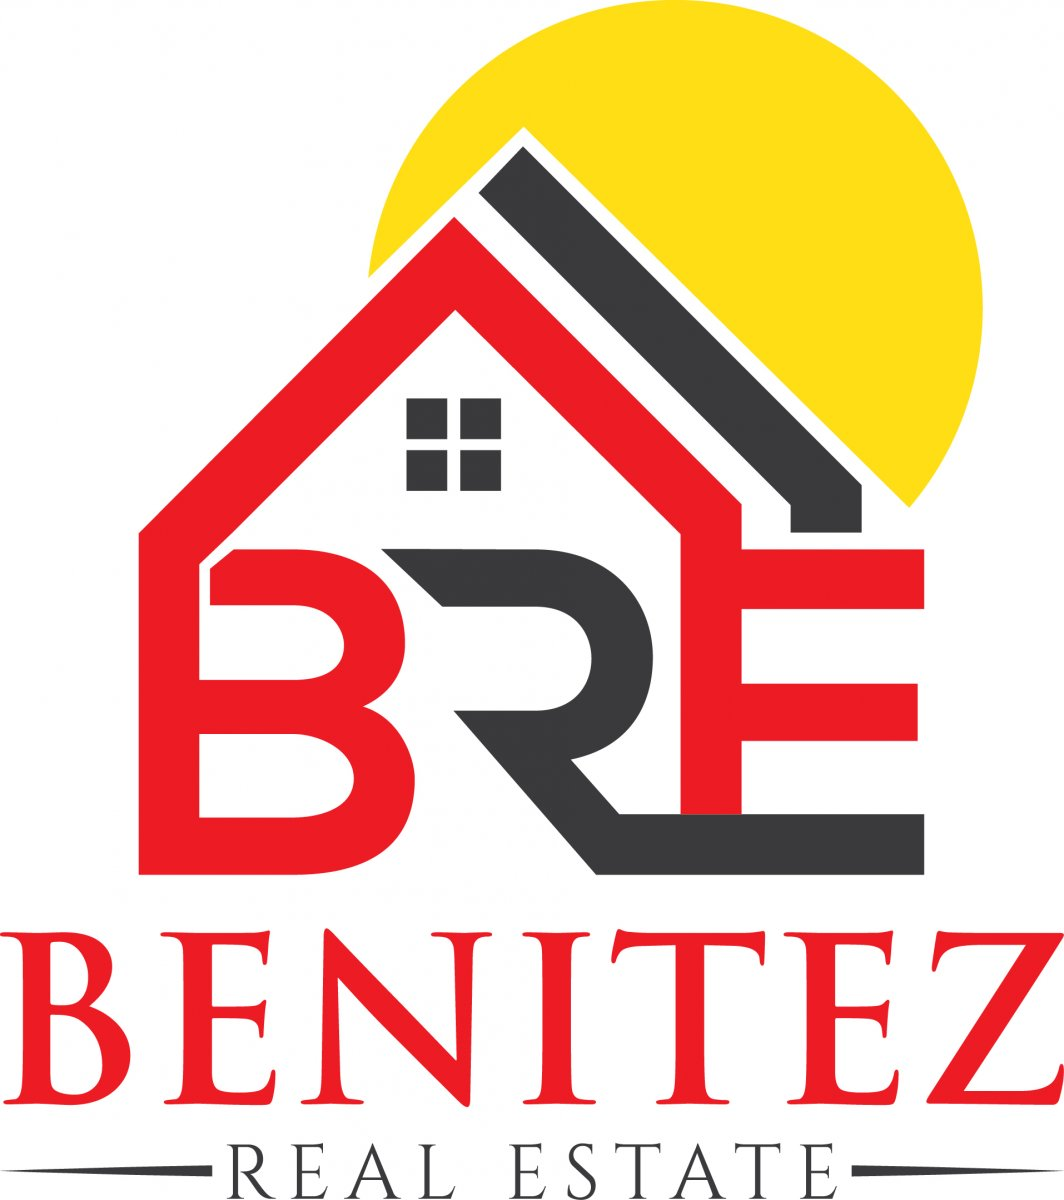 Benitez Real Estate, LLC logo